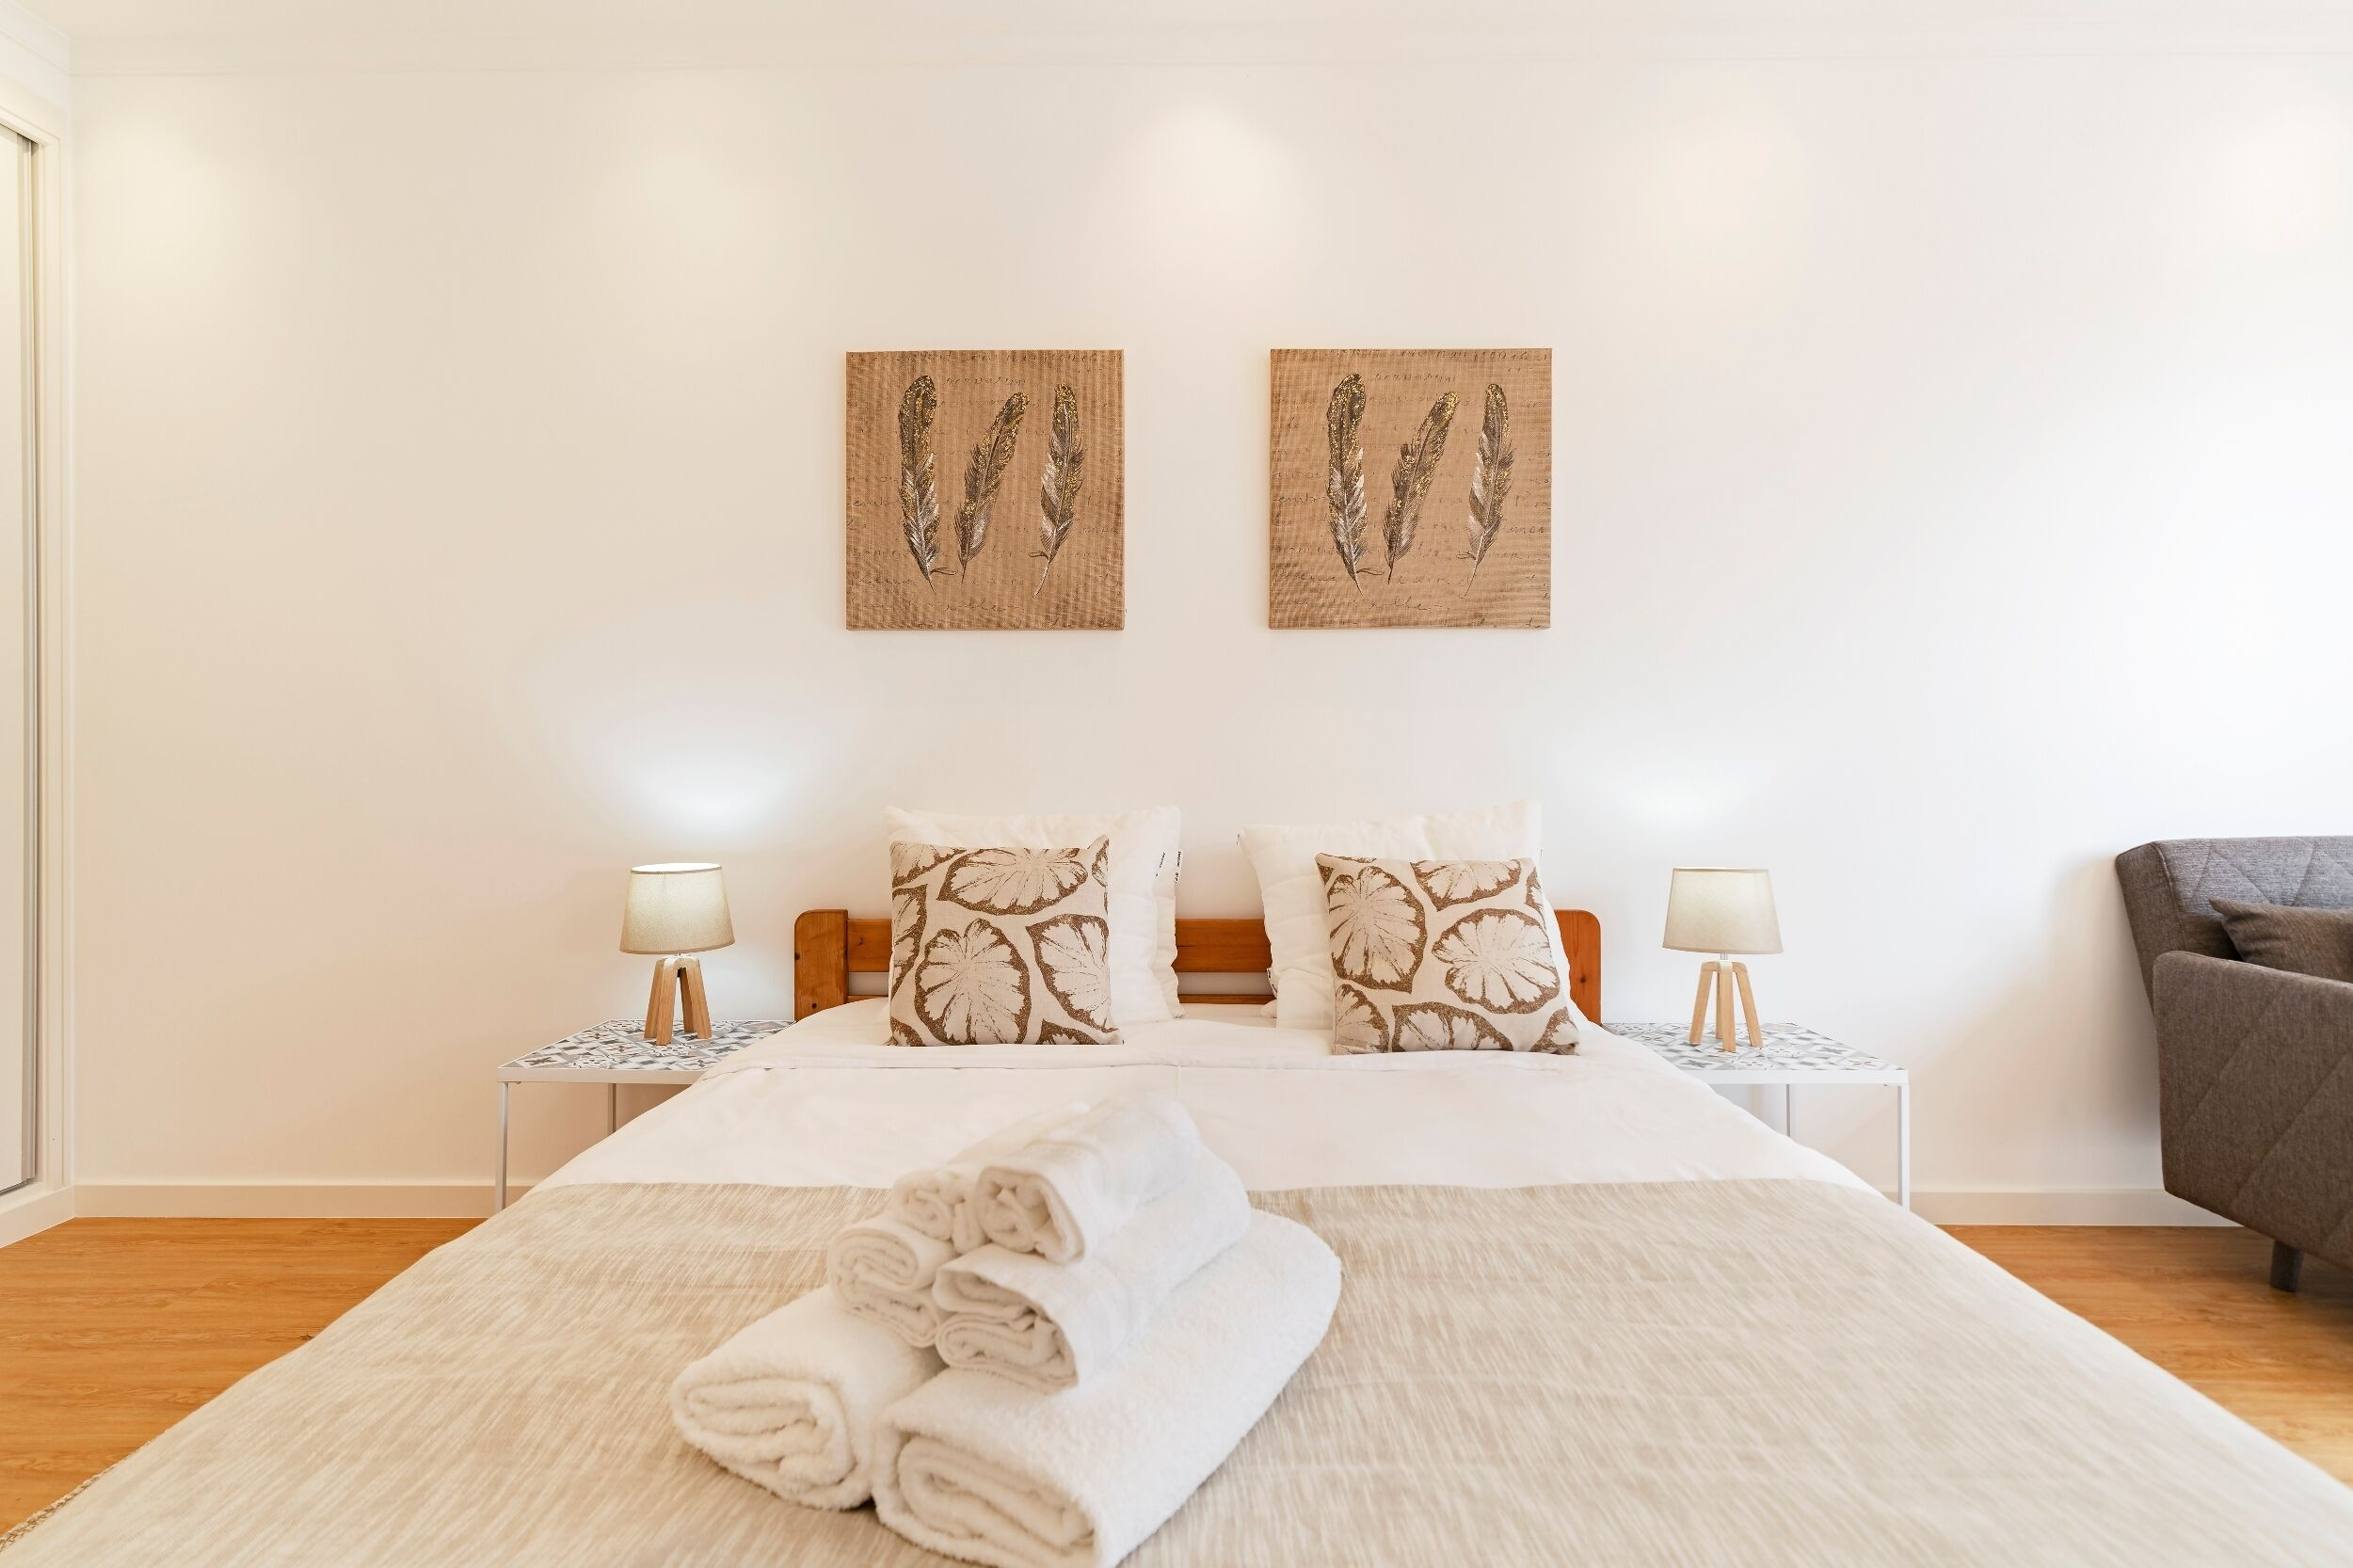 Spacious 1 Bedroom Air Conditioned Apartment Close To All Amenities Magnolia Funchal Hotelbewertungen 2020 Expedia Ch